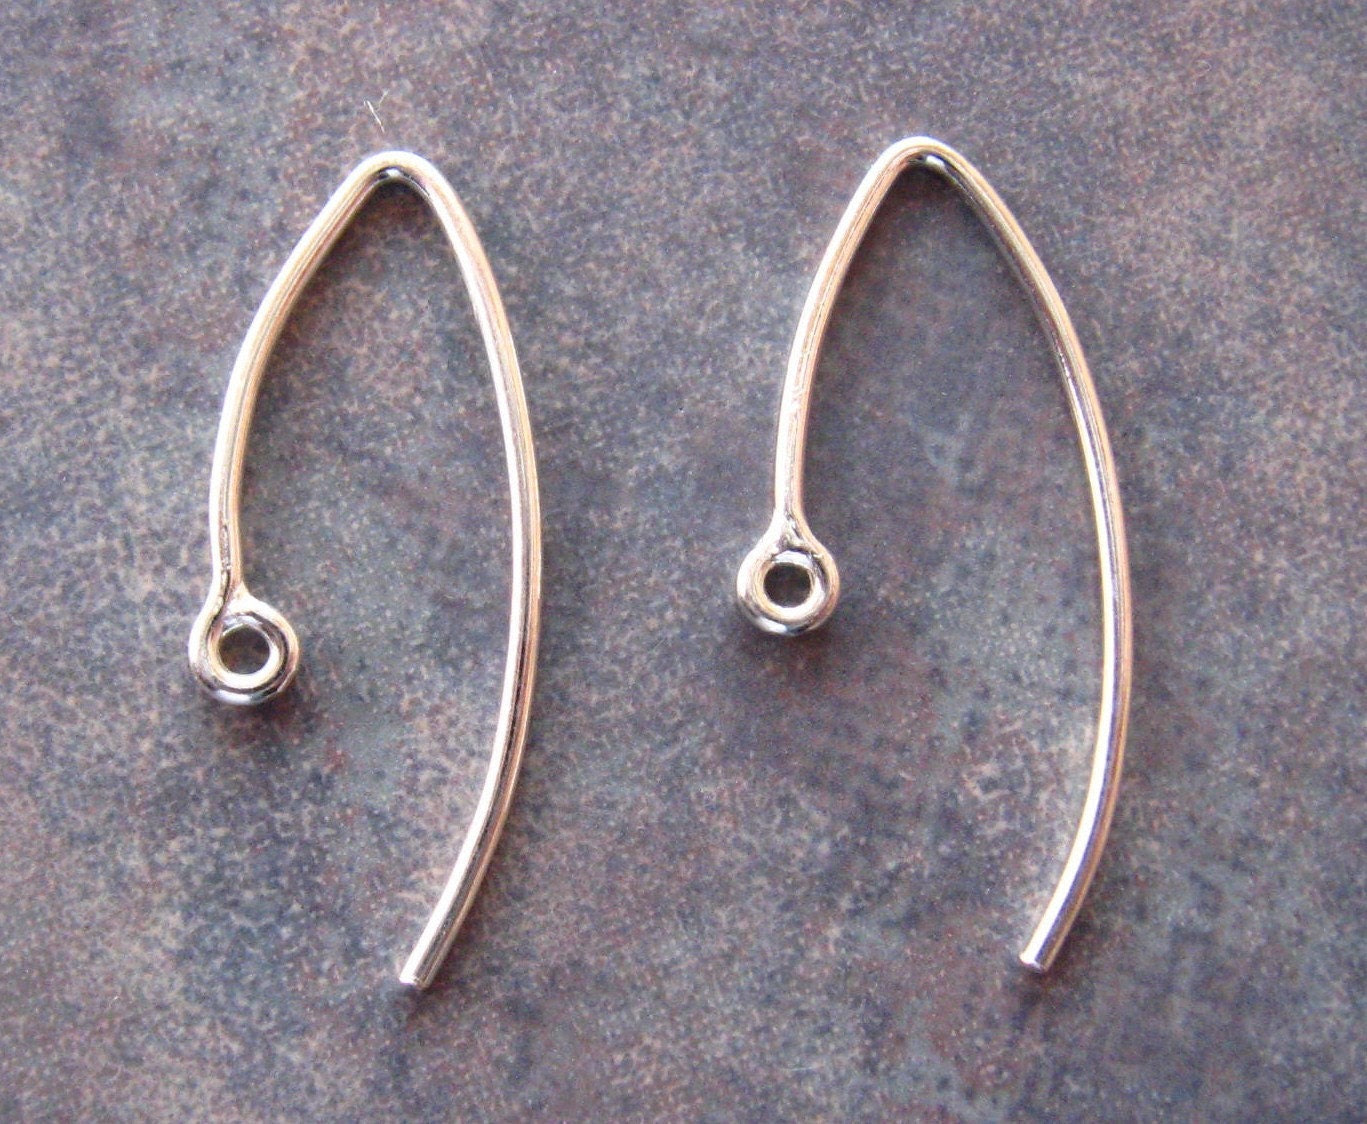 4 Bali Sterling Silver Marquise - Leaf Ear Wires  20mm x  10mm - 2 pairs LOW SHIPPING - LindenAvenueDesigns